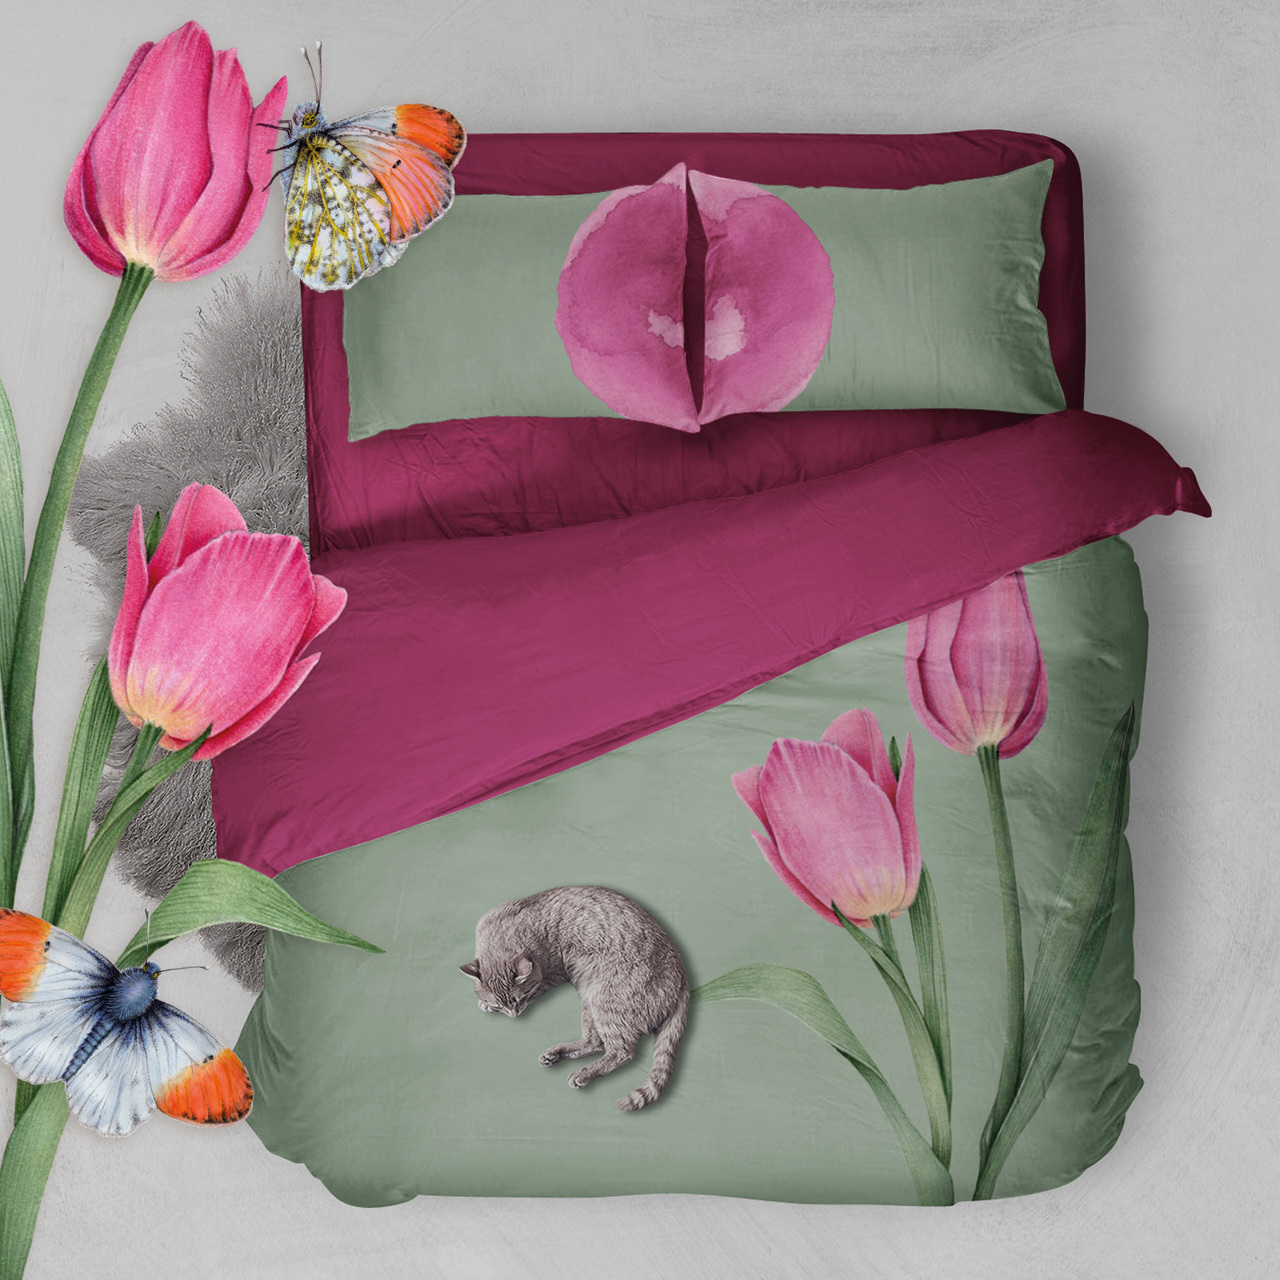 Blooms of Love Bedding Collection